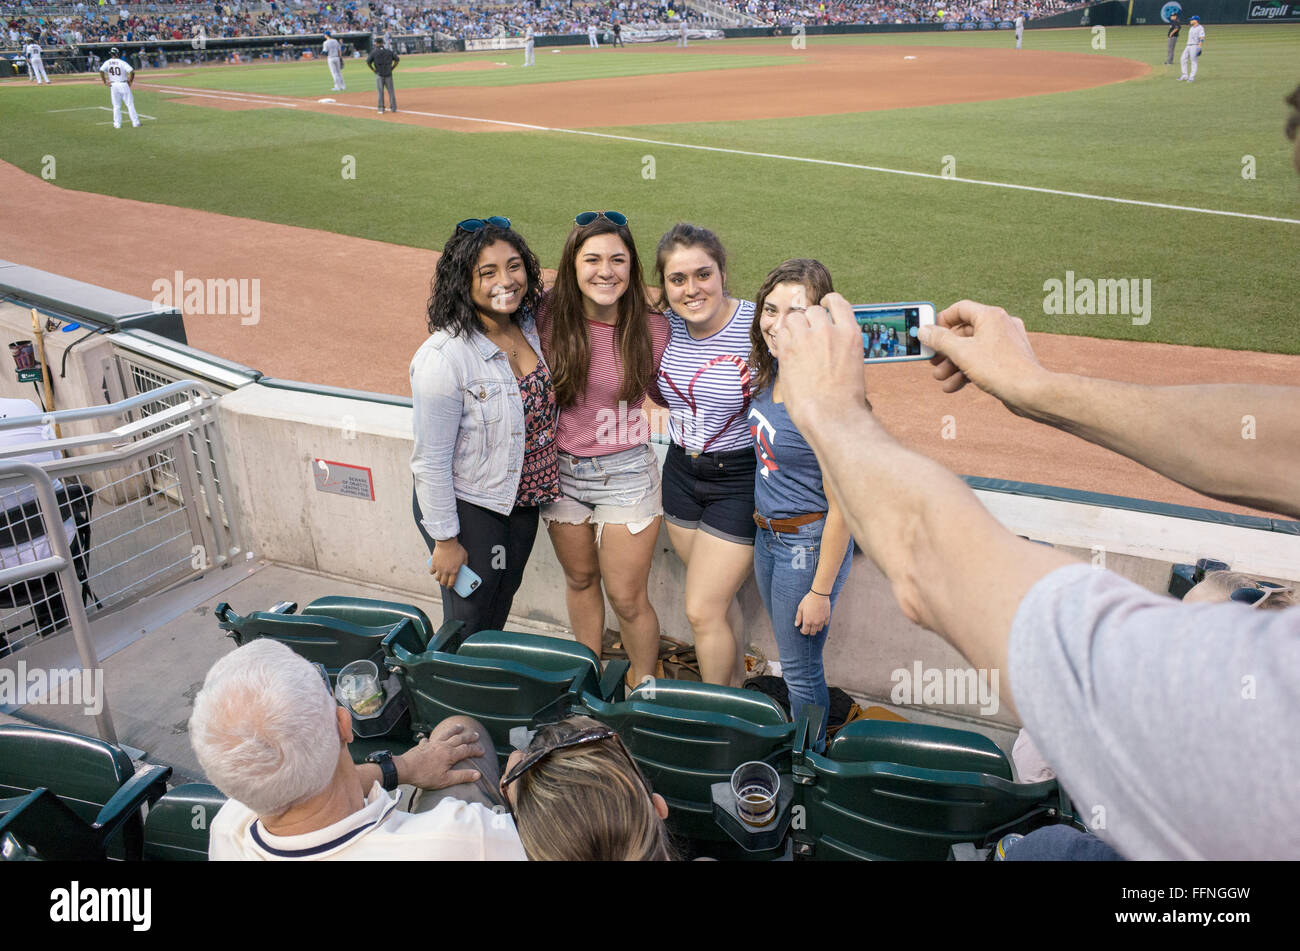 Four teenage women having their photo taken with a cell phone at Minnesota Twins baseball game. Minneapolis Minnesota - Stock Image